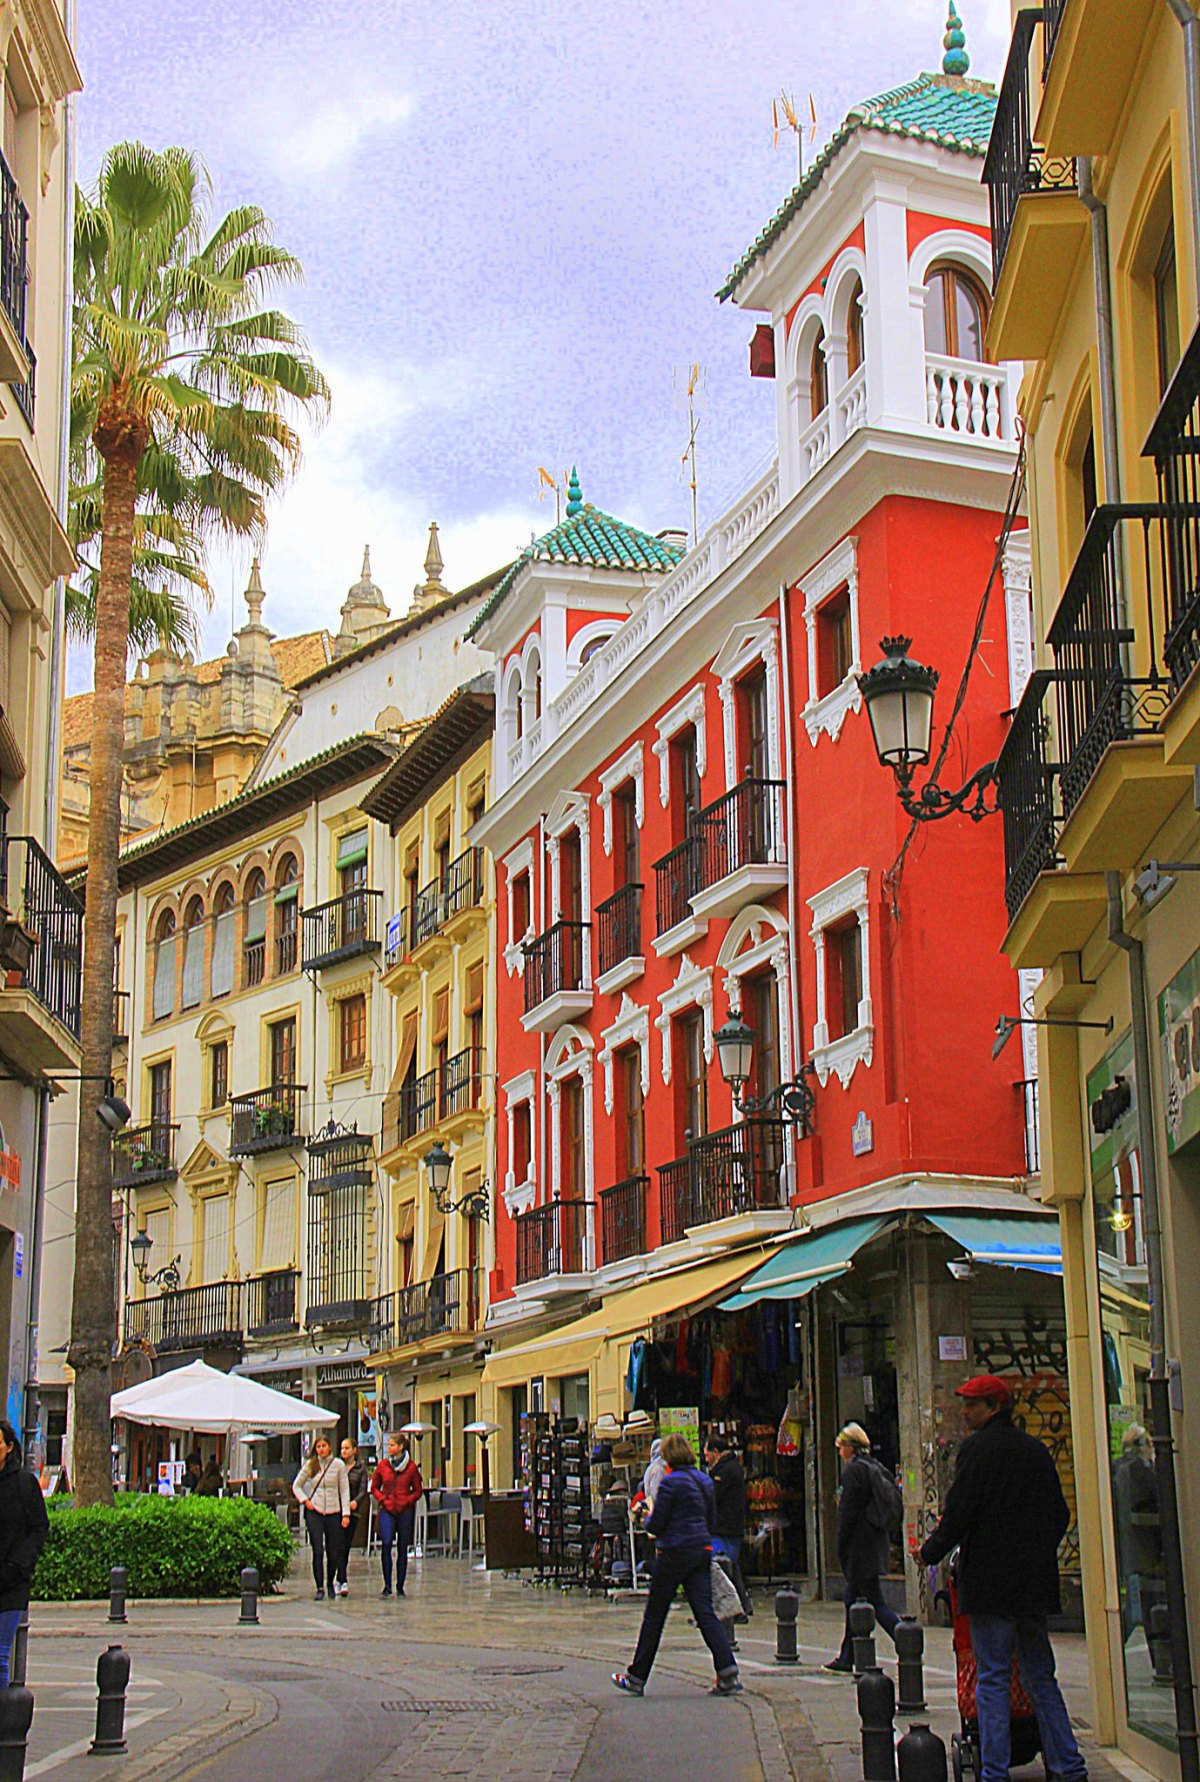 The bustling central Granada is very popular among tourists